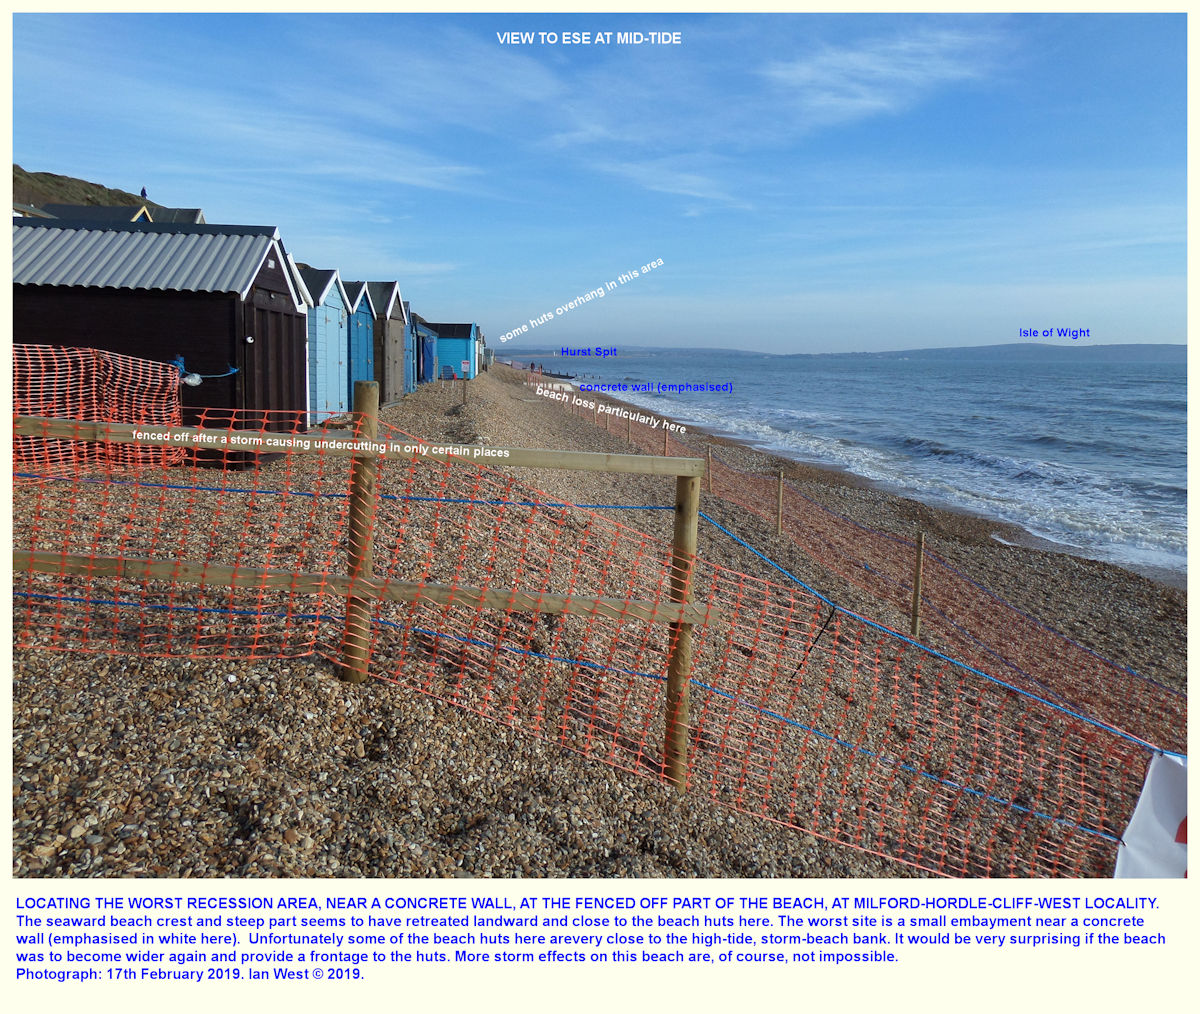 Fenced off area of beach huts, as seen on the 11th February 2019 at the beach near the Milford, Hordle Cliff West car park